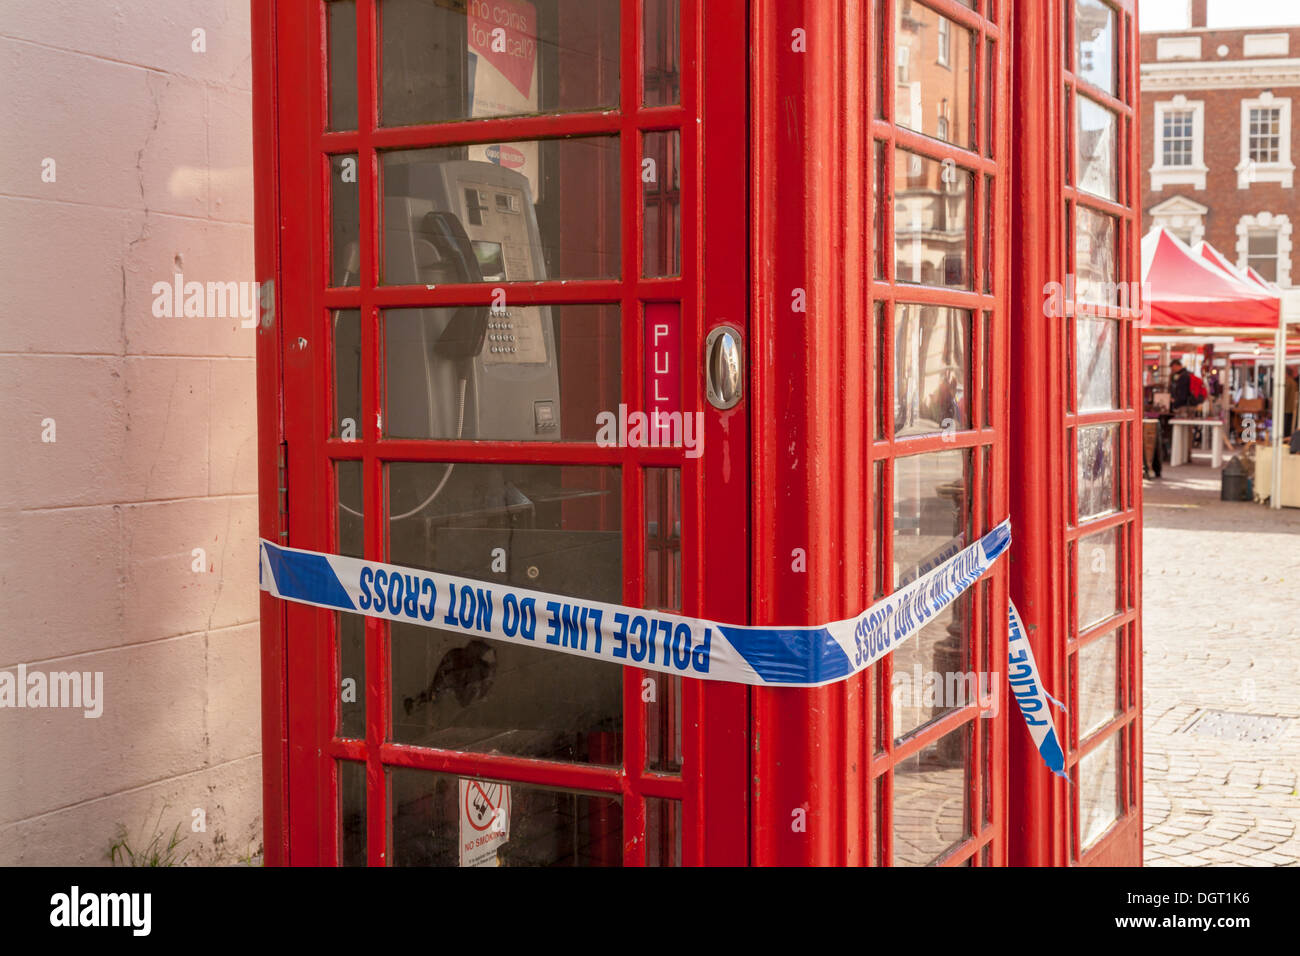 Police crime scene tape wrapped around a telephone kiosk, Newark on Trent, Nottinghamshire, England, UK - Stock Image